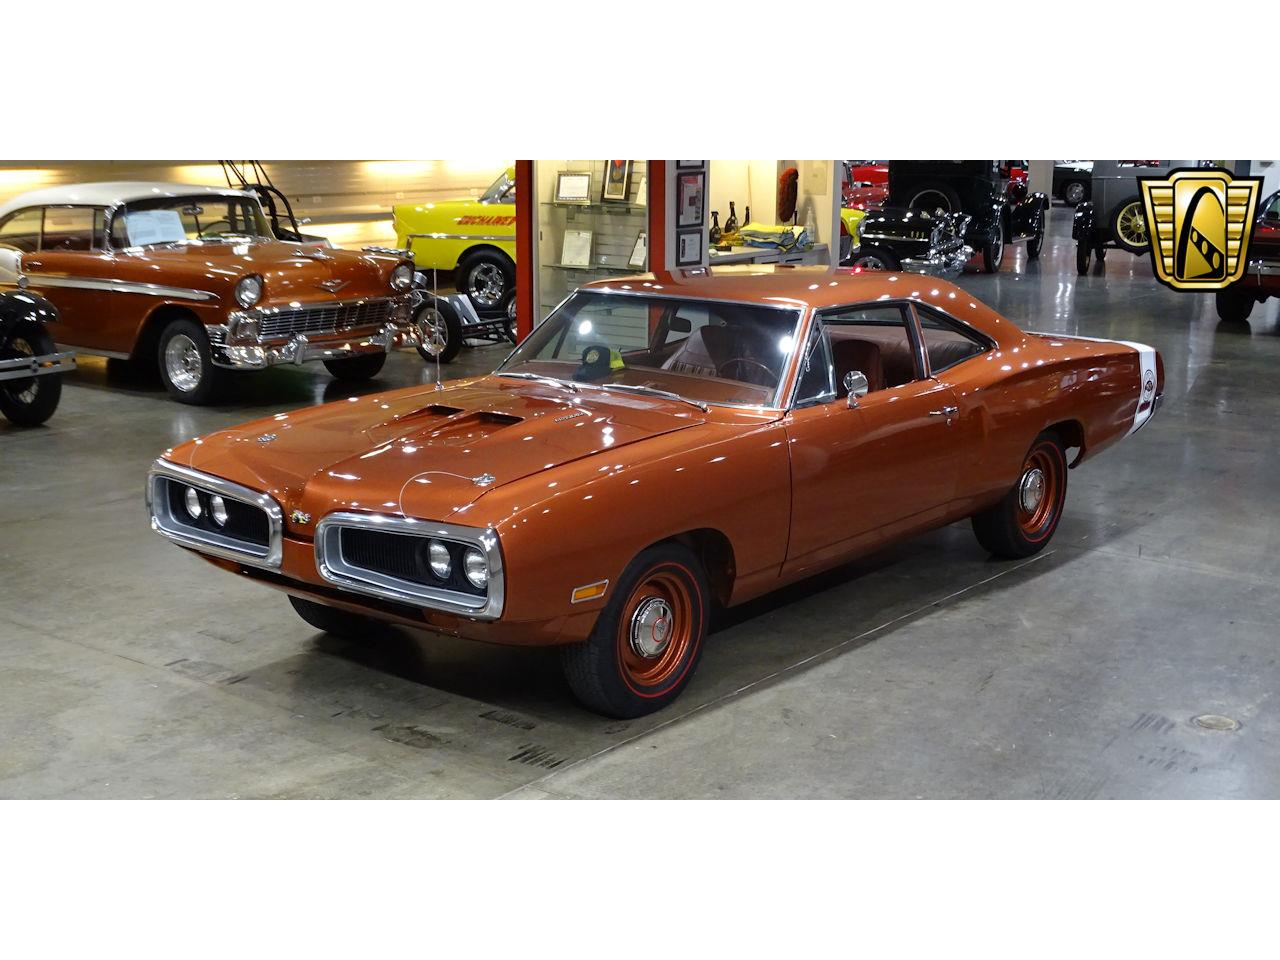 Large Picture of Classic '70 Dodge Super Bee located in O'Fallon Illinois - $61,000.00 Offered by Gateway Classic Cars - St. Louis - QB4W